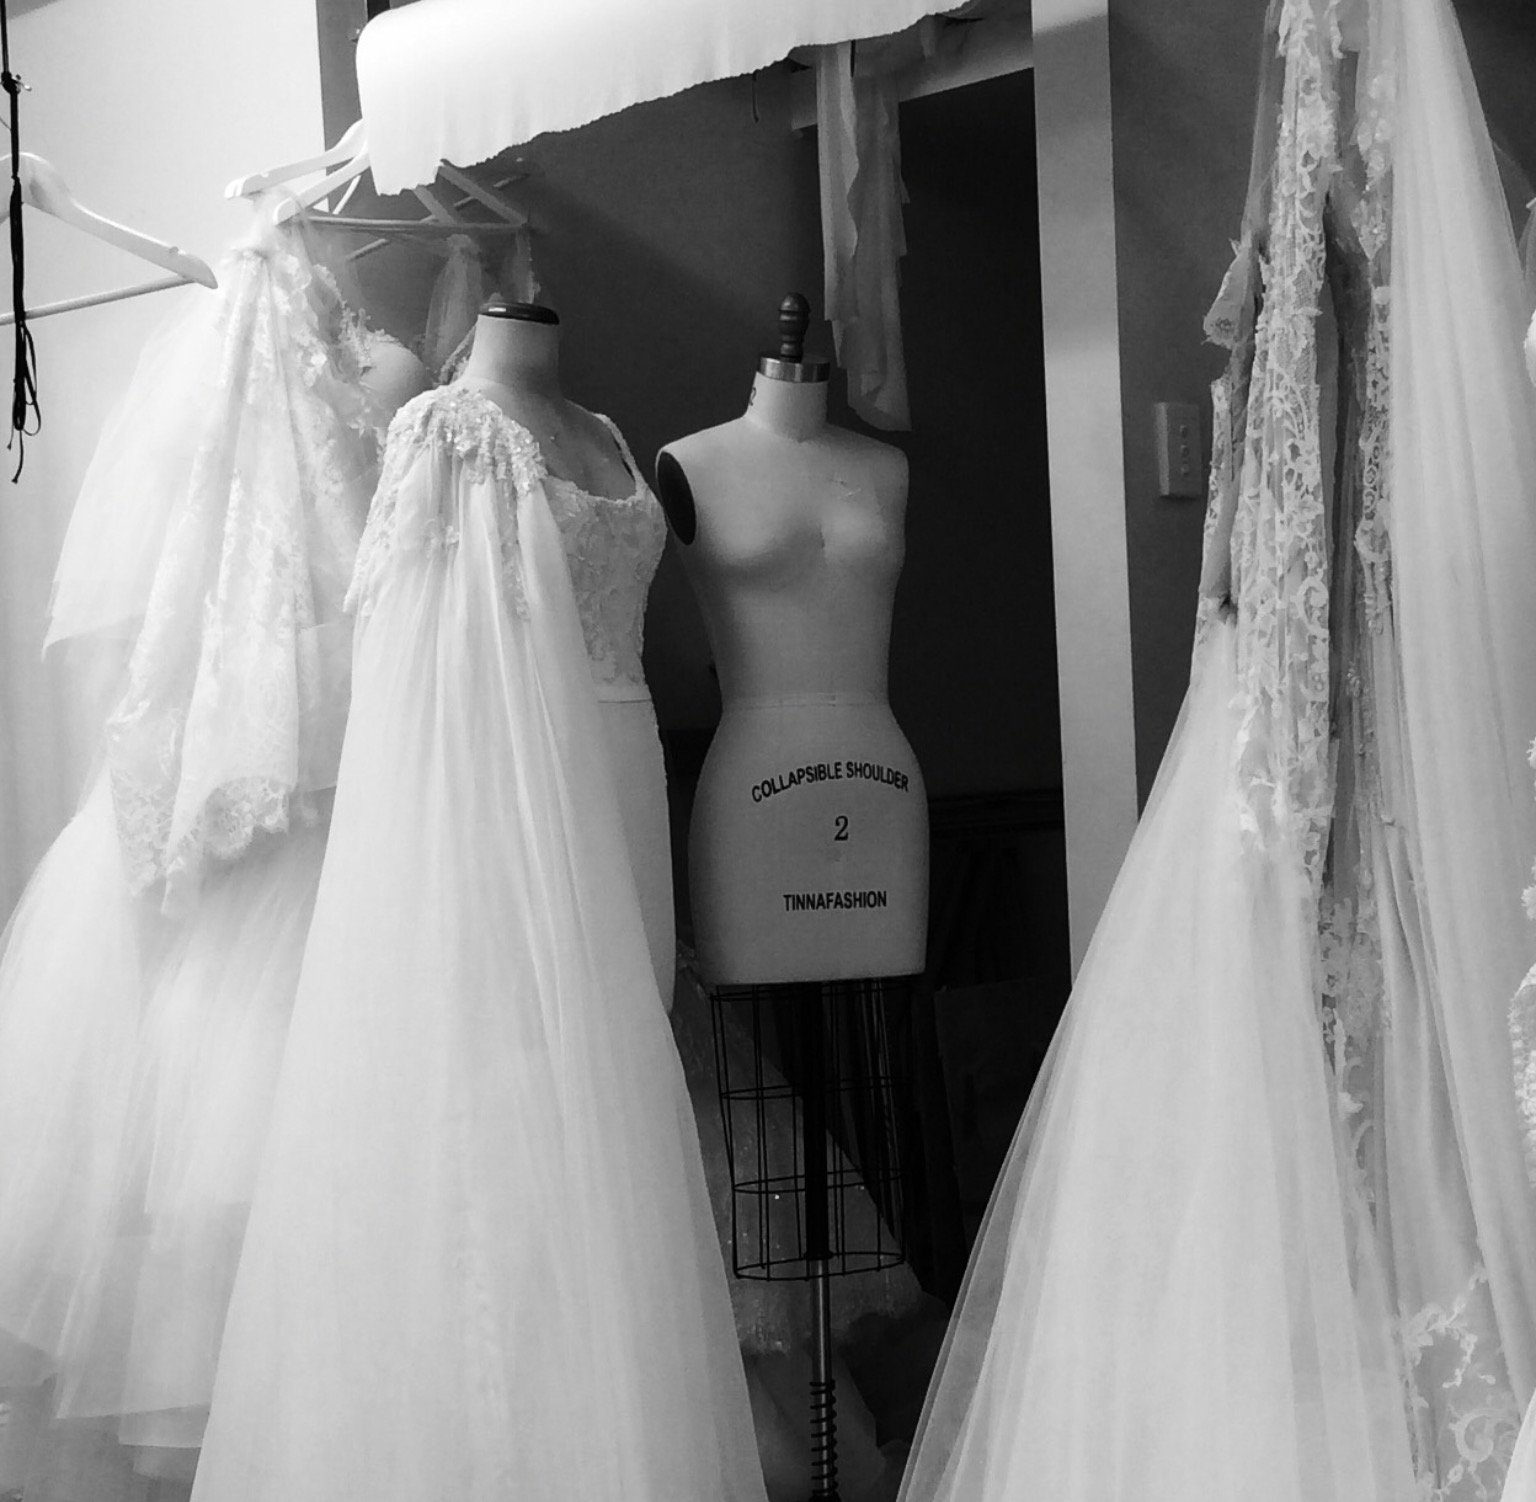 MXM Couture Weddding Dresses In Studio